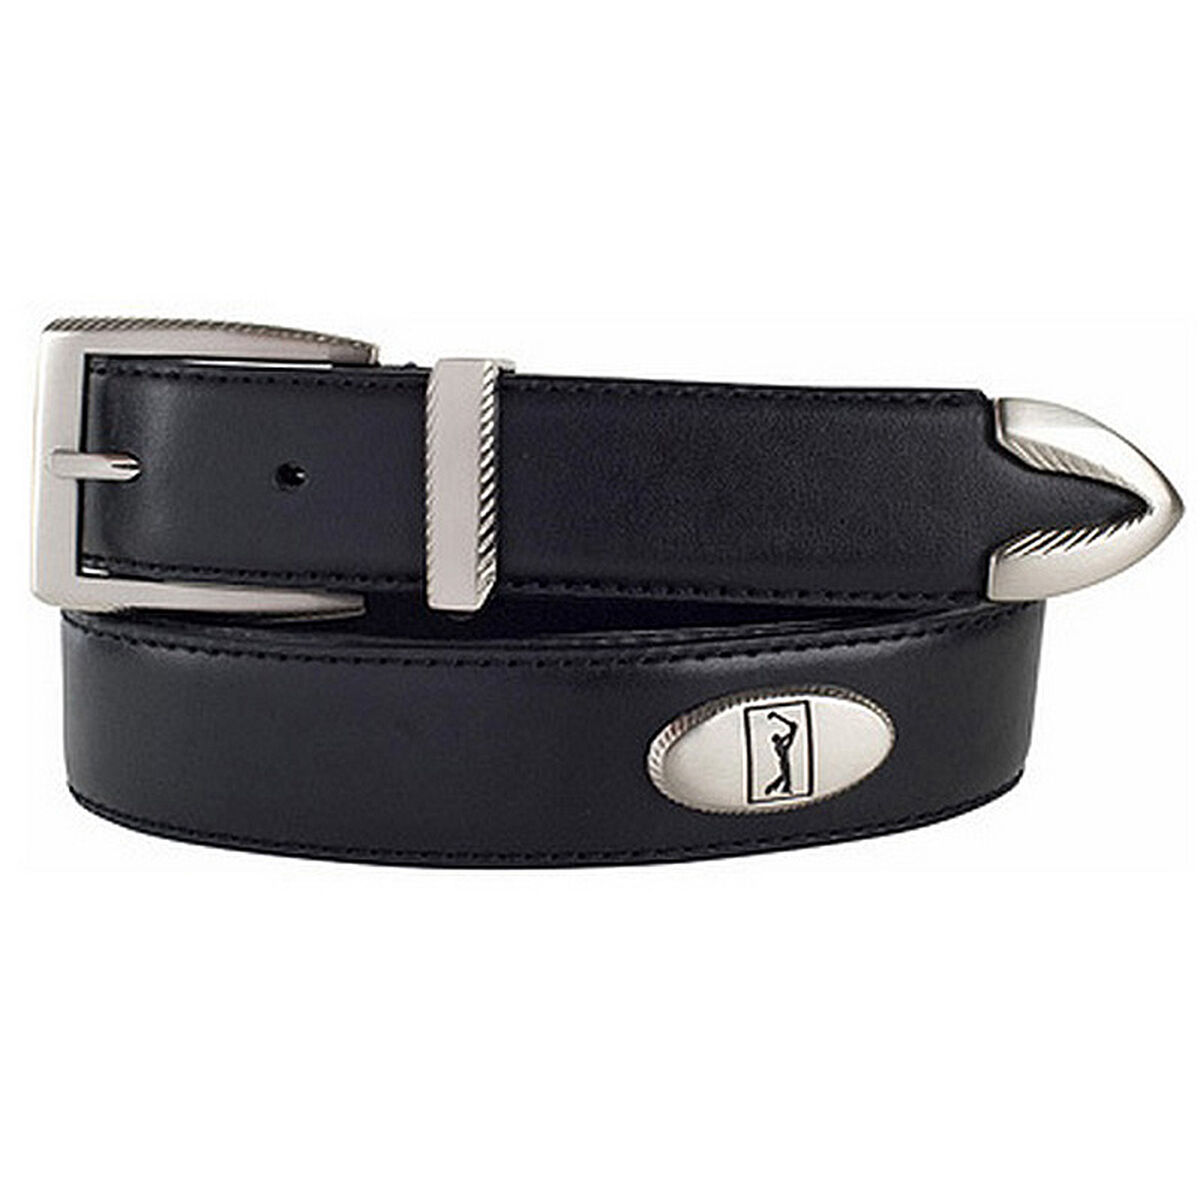 ef7dcb24d59826 Concho Belt by PGA TOUR: Shop PGA TOUR Golf Belts | PGA TOUR Superstore